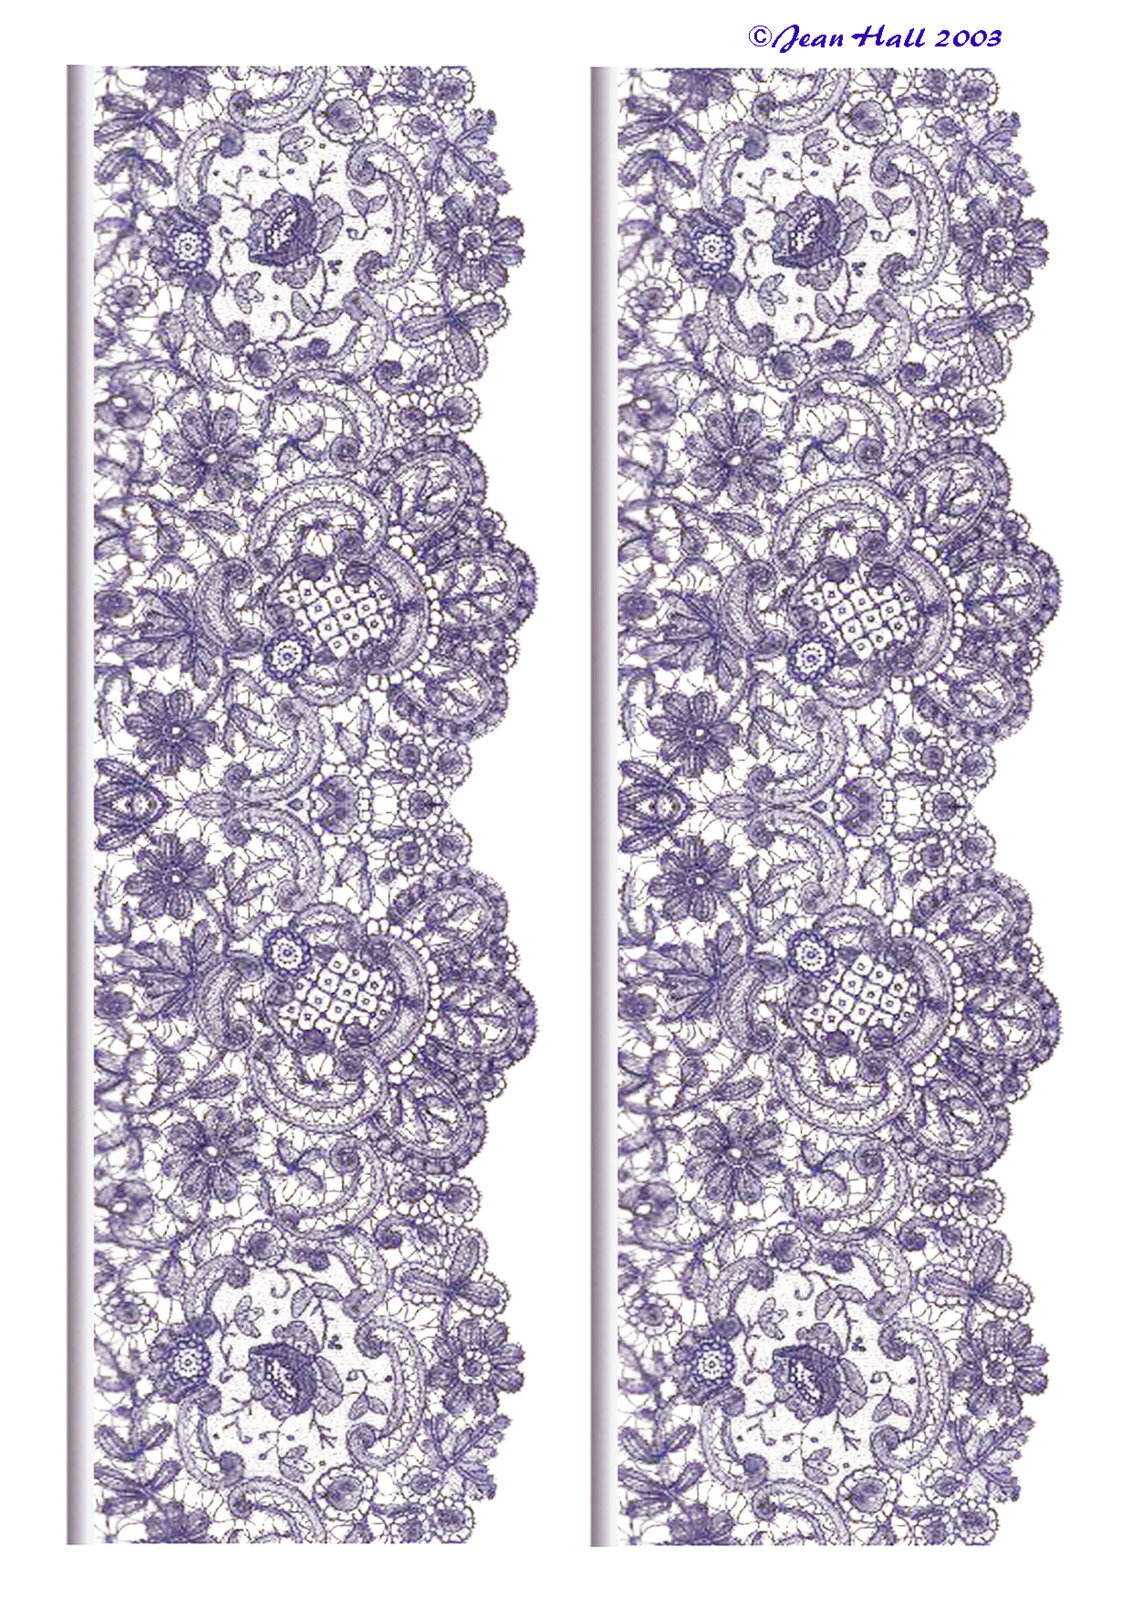 Simple lace patterns clipart - photo#27